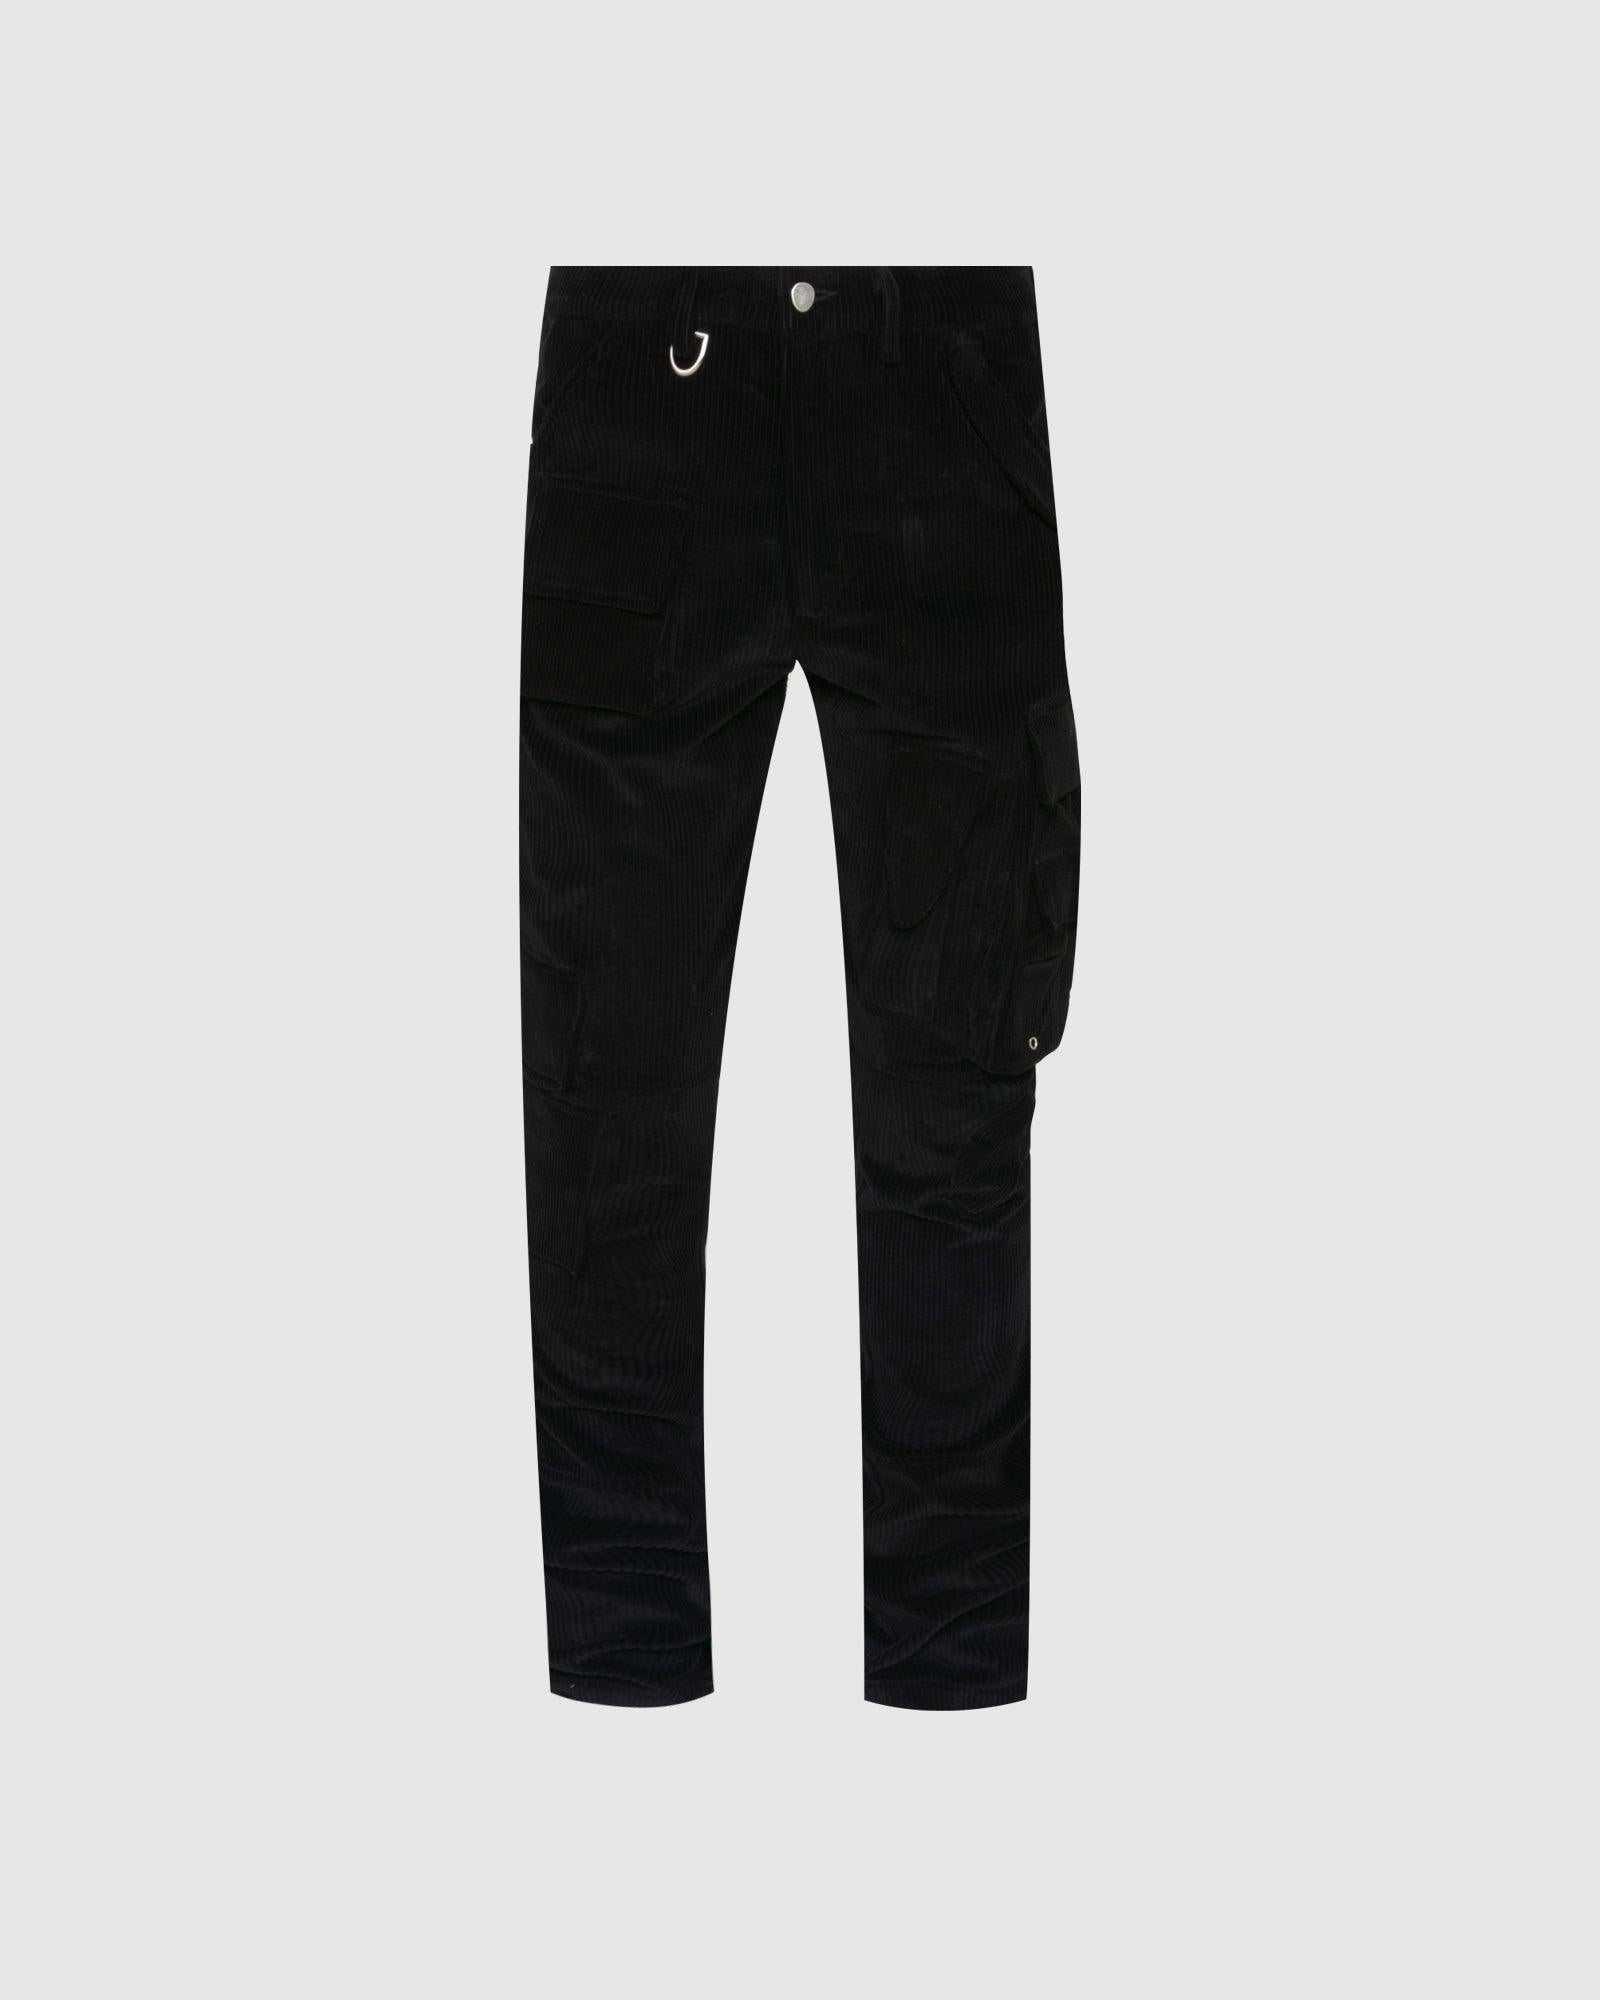 BROWNSTONE: CARGO PANTS [BLACK]